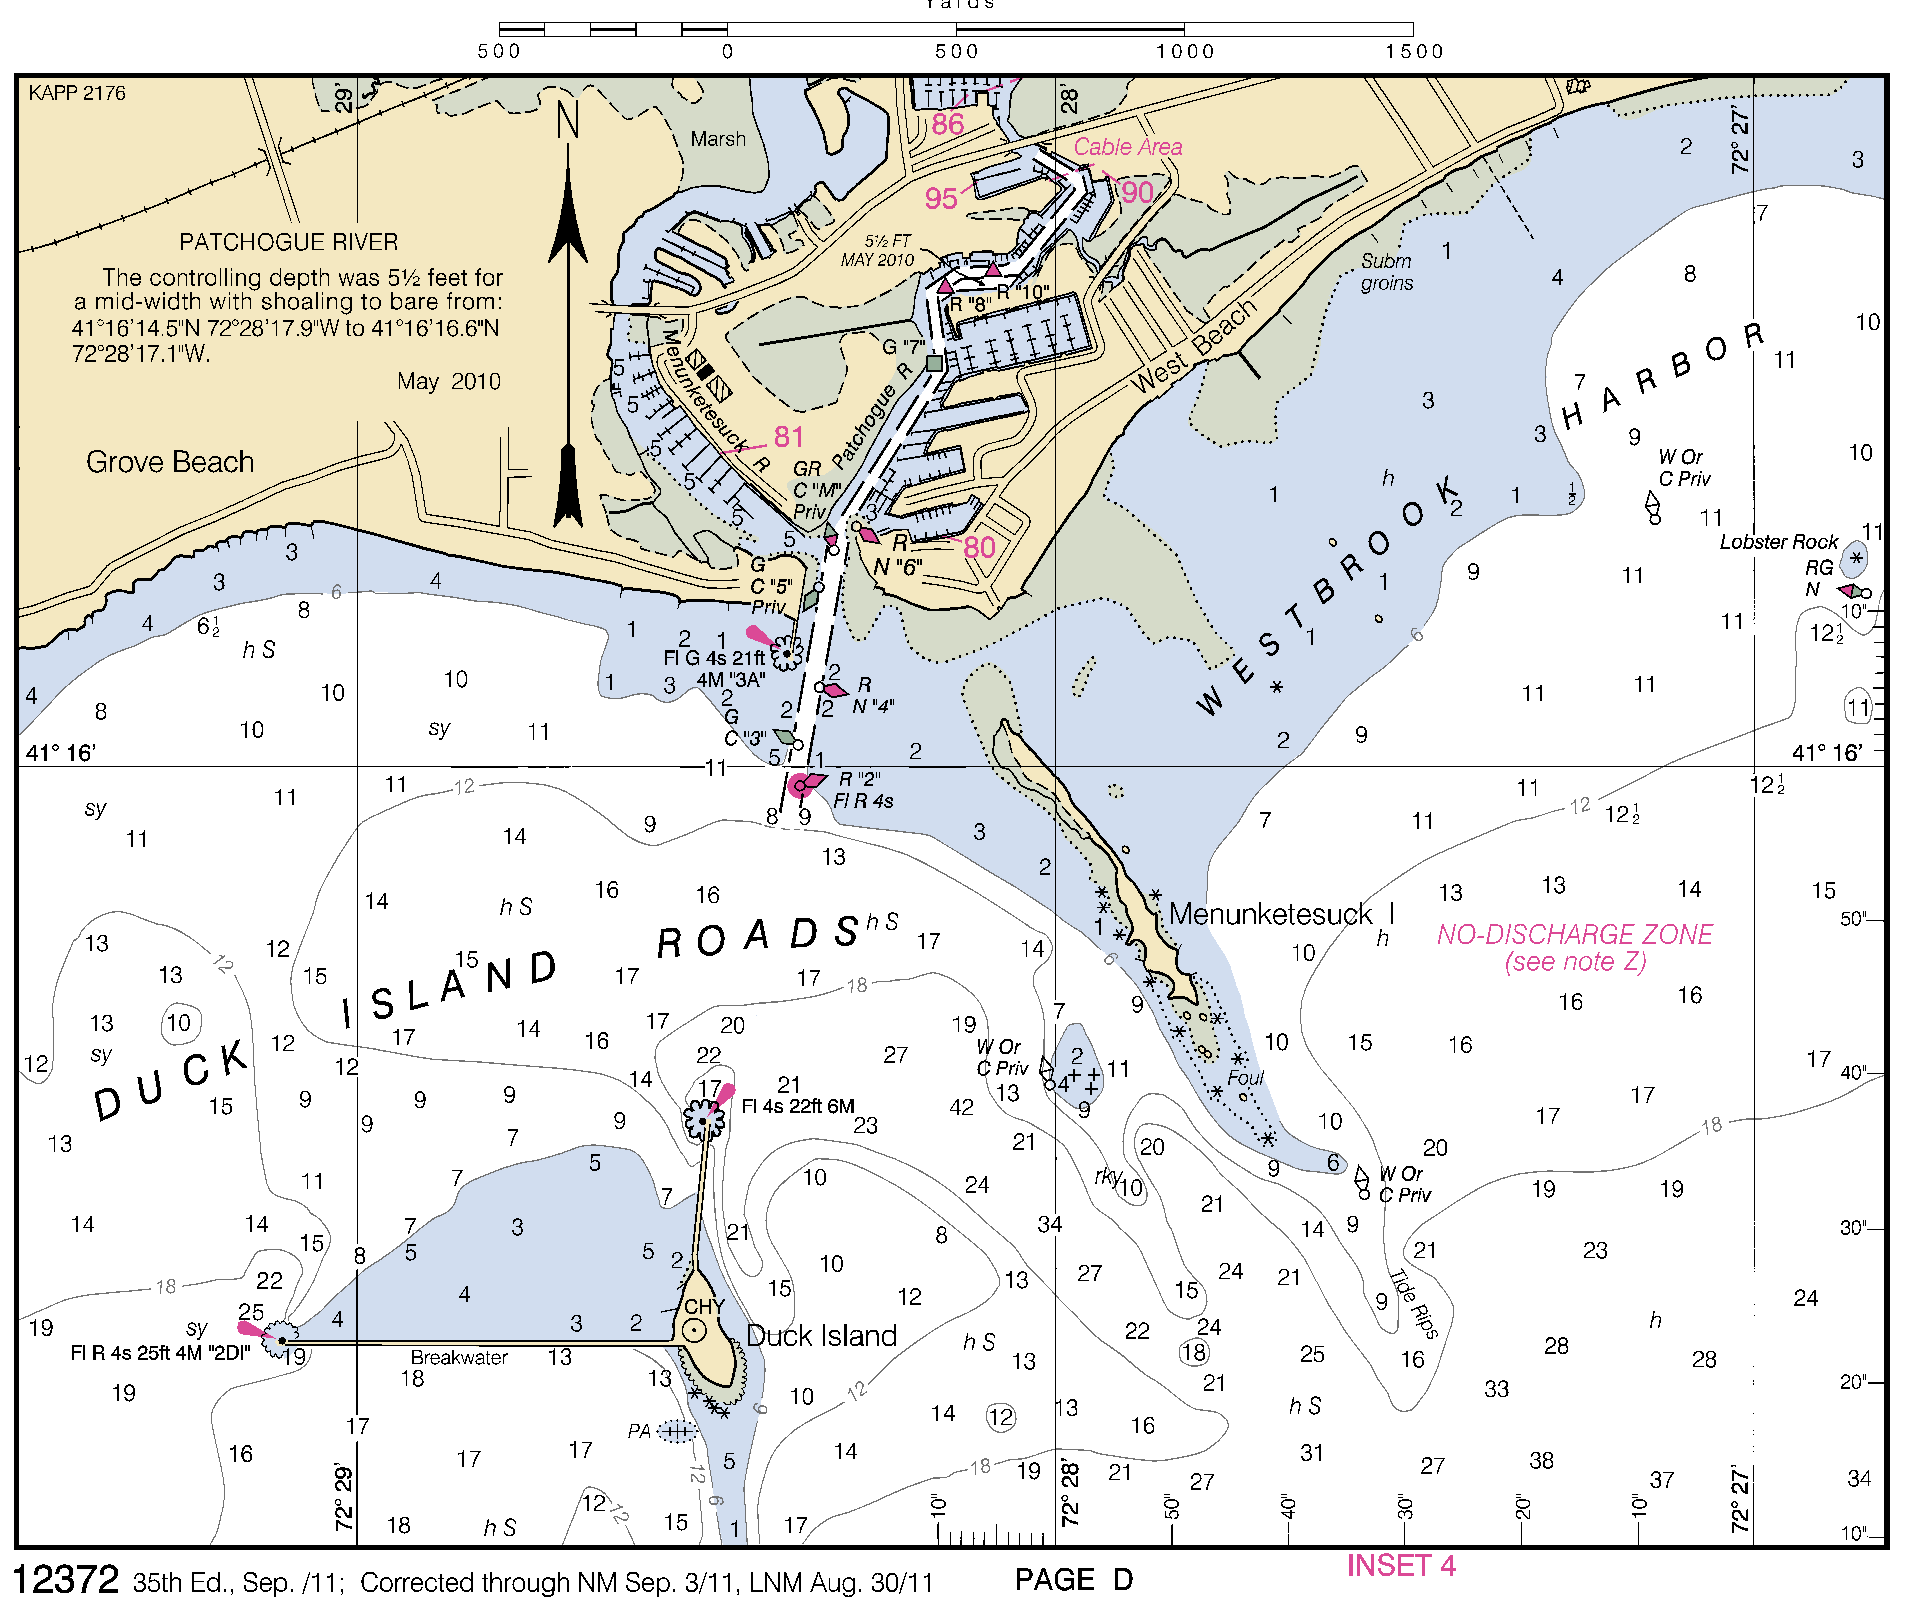 map of cape may nj with 12372 12 Duck Island Roads Inset on History Revolutionary War additionally 12372 12 duck island roads inset in addition 3540388040 further 35831 additionally Best Outdoor Water Park.